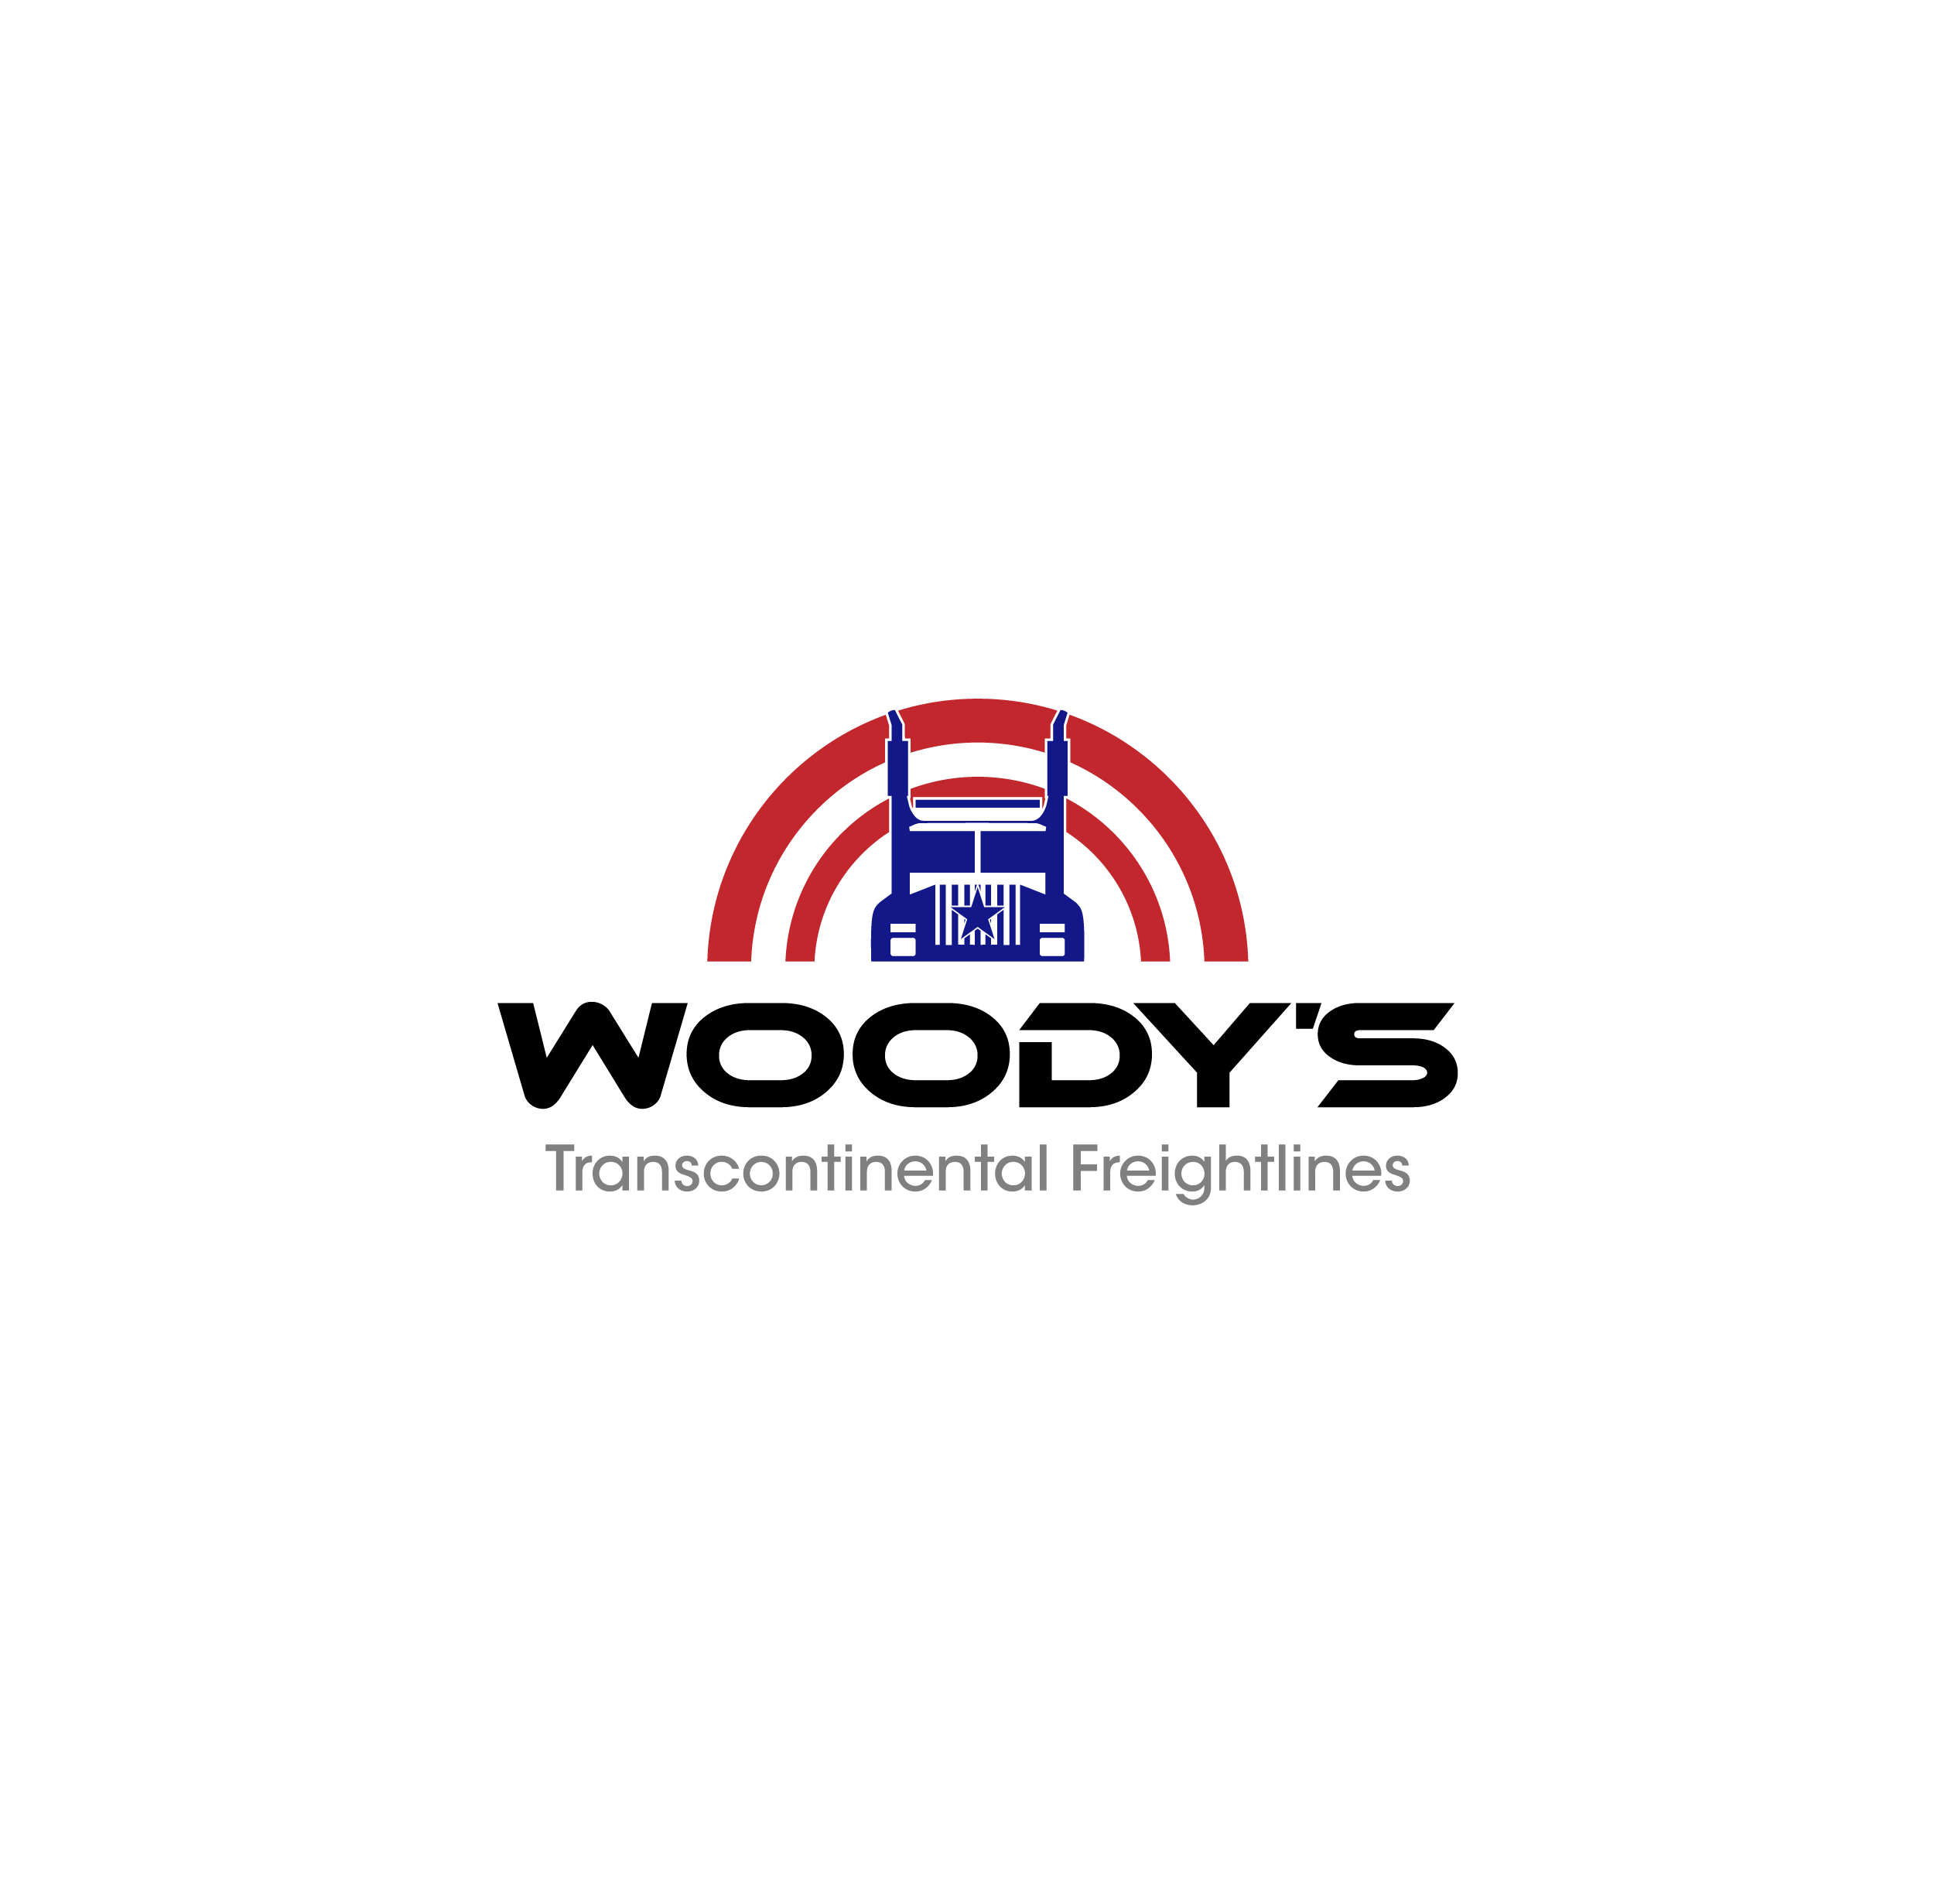 Logo Design by chinie05 - Entry No. 59 in the Logo Design Contest Creative Logo Design for Woody's Transcontinental Freightlines.